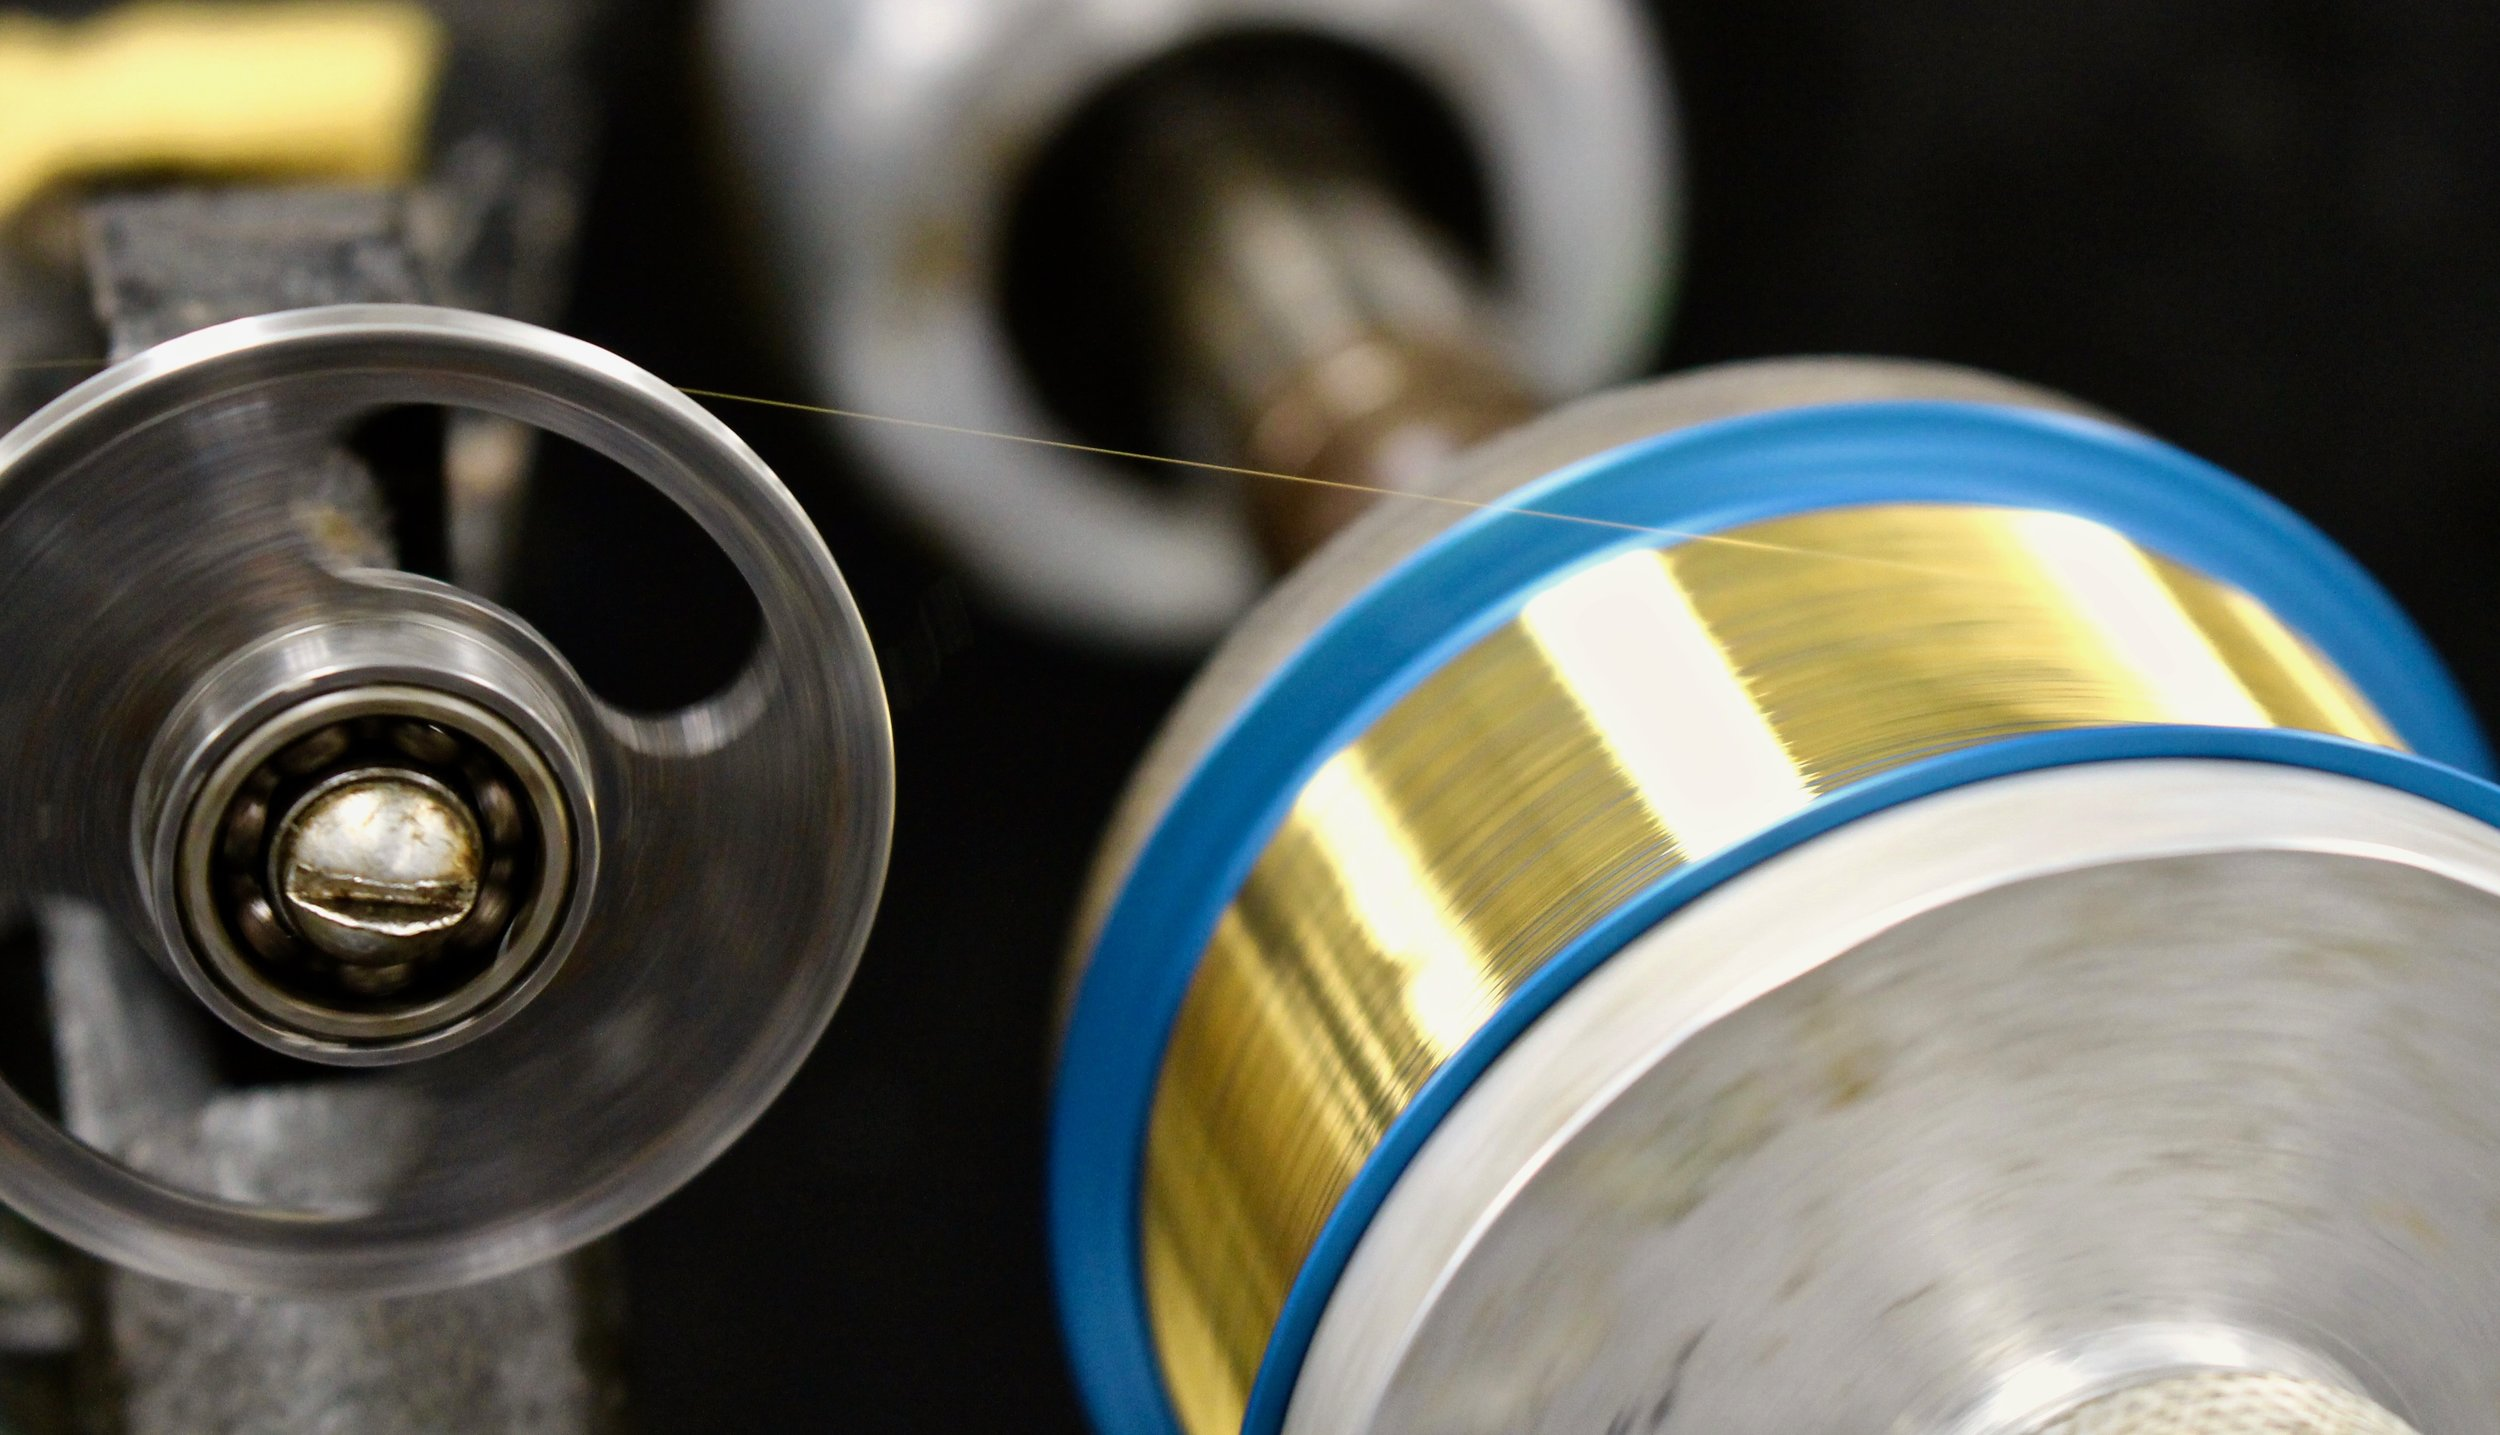 sigmund-cohn-corp-metals-manufacturer-our-specialties-forms-and-applications-wire-2